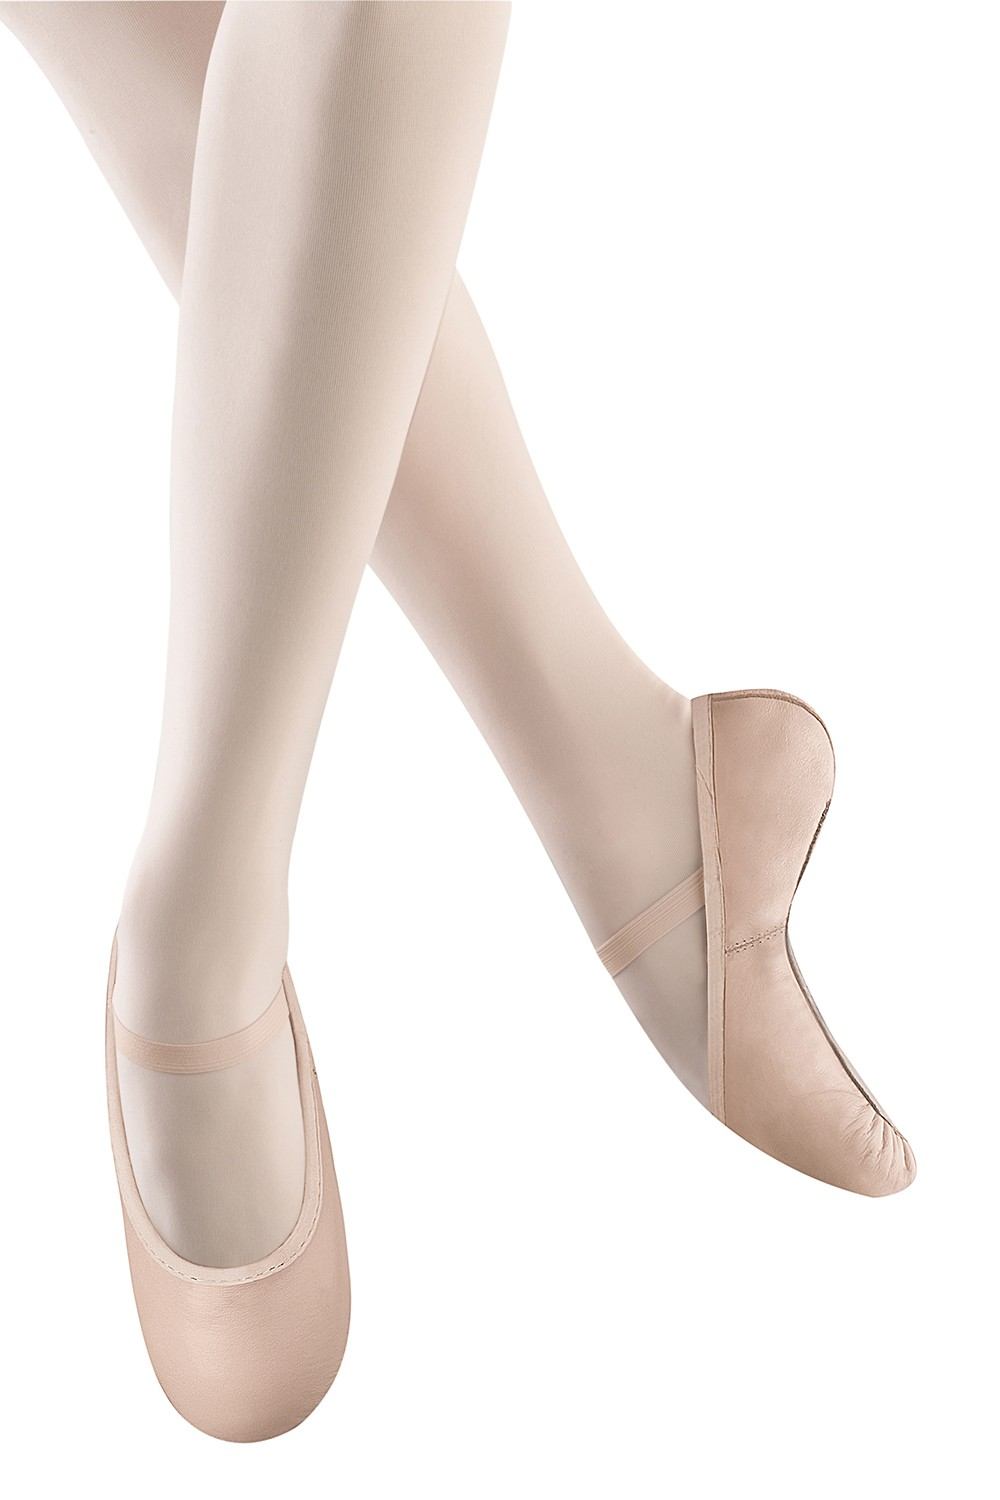 Belle - Toddler Girl's Ballet Shoes